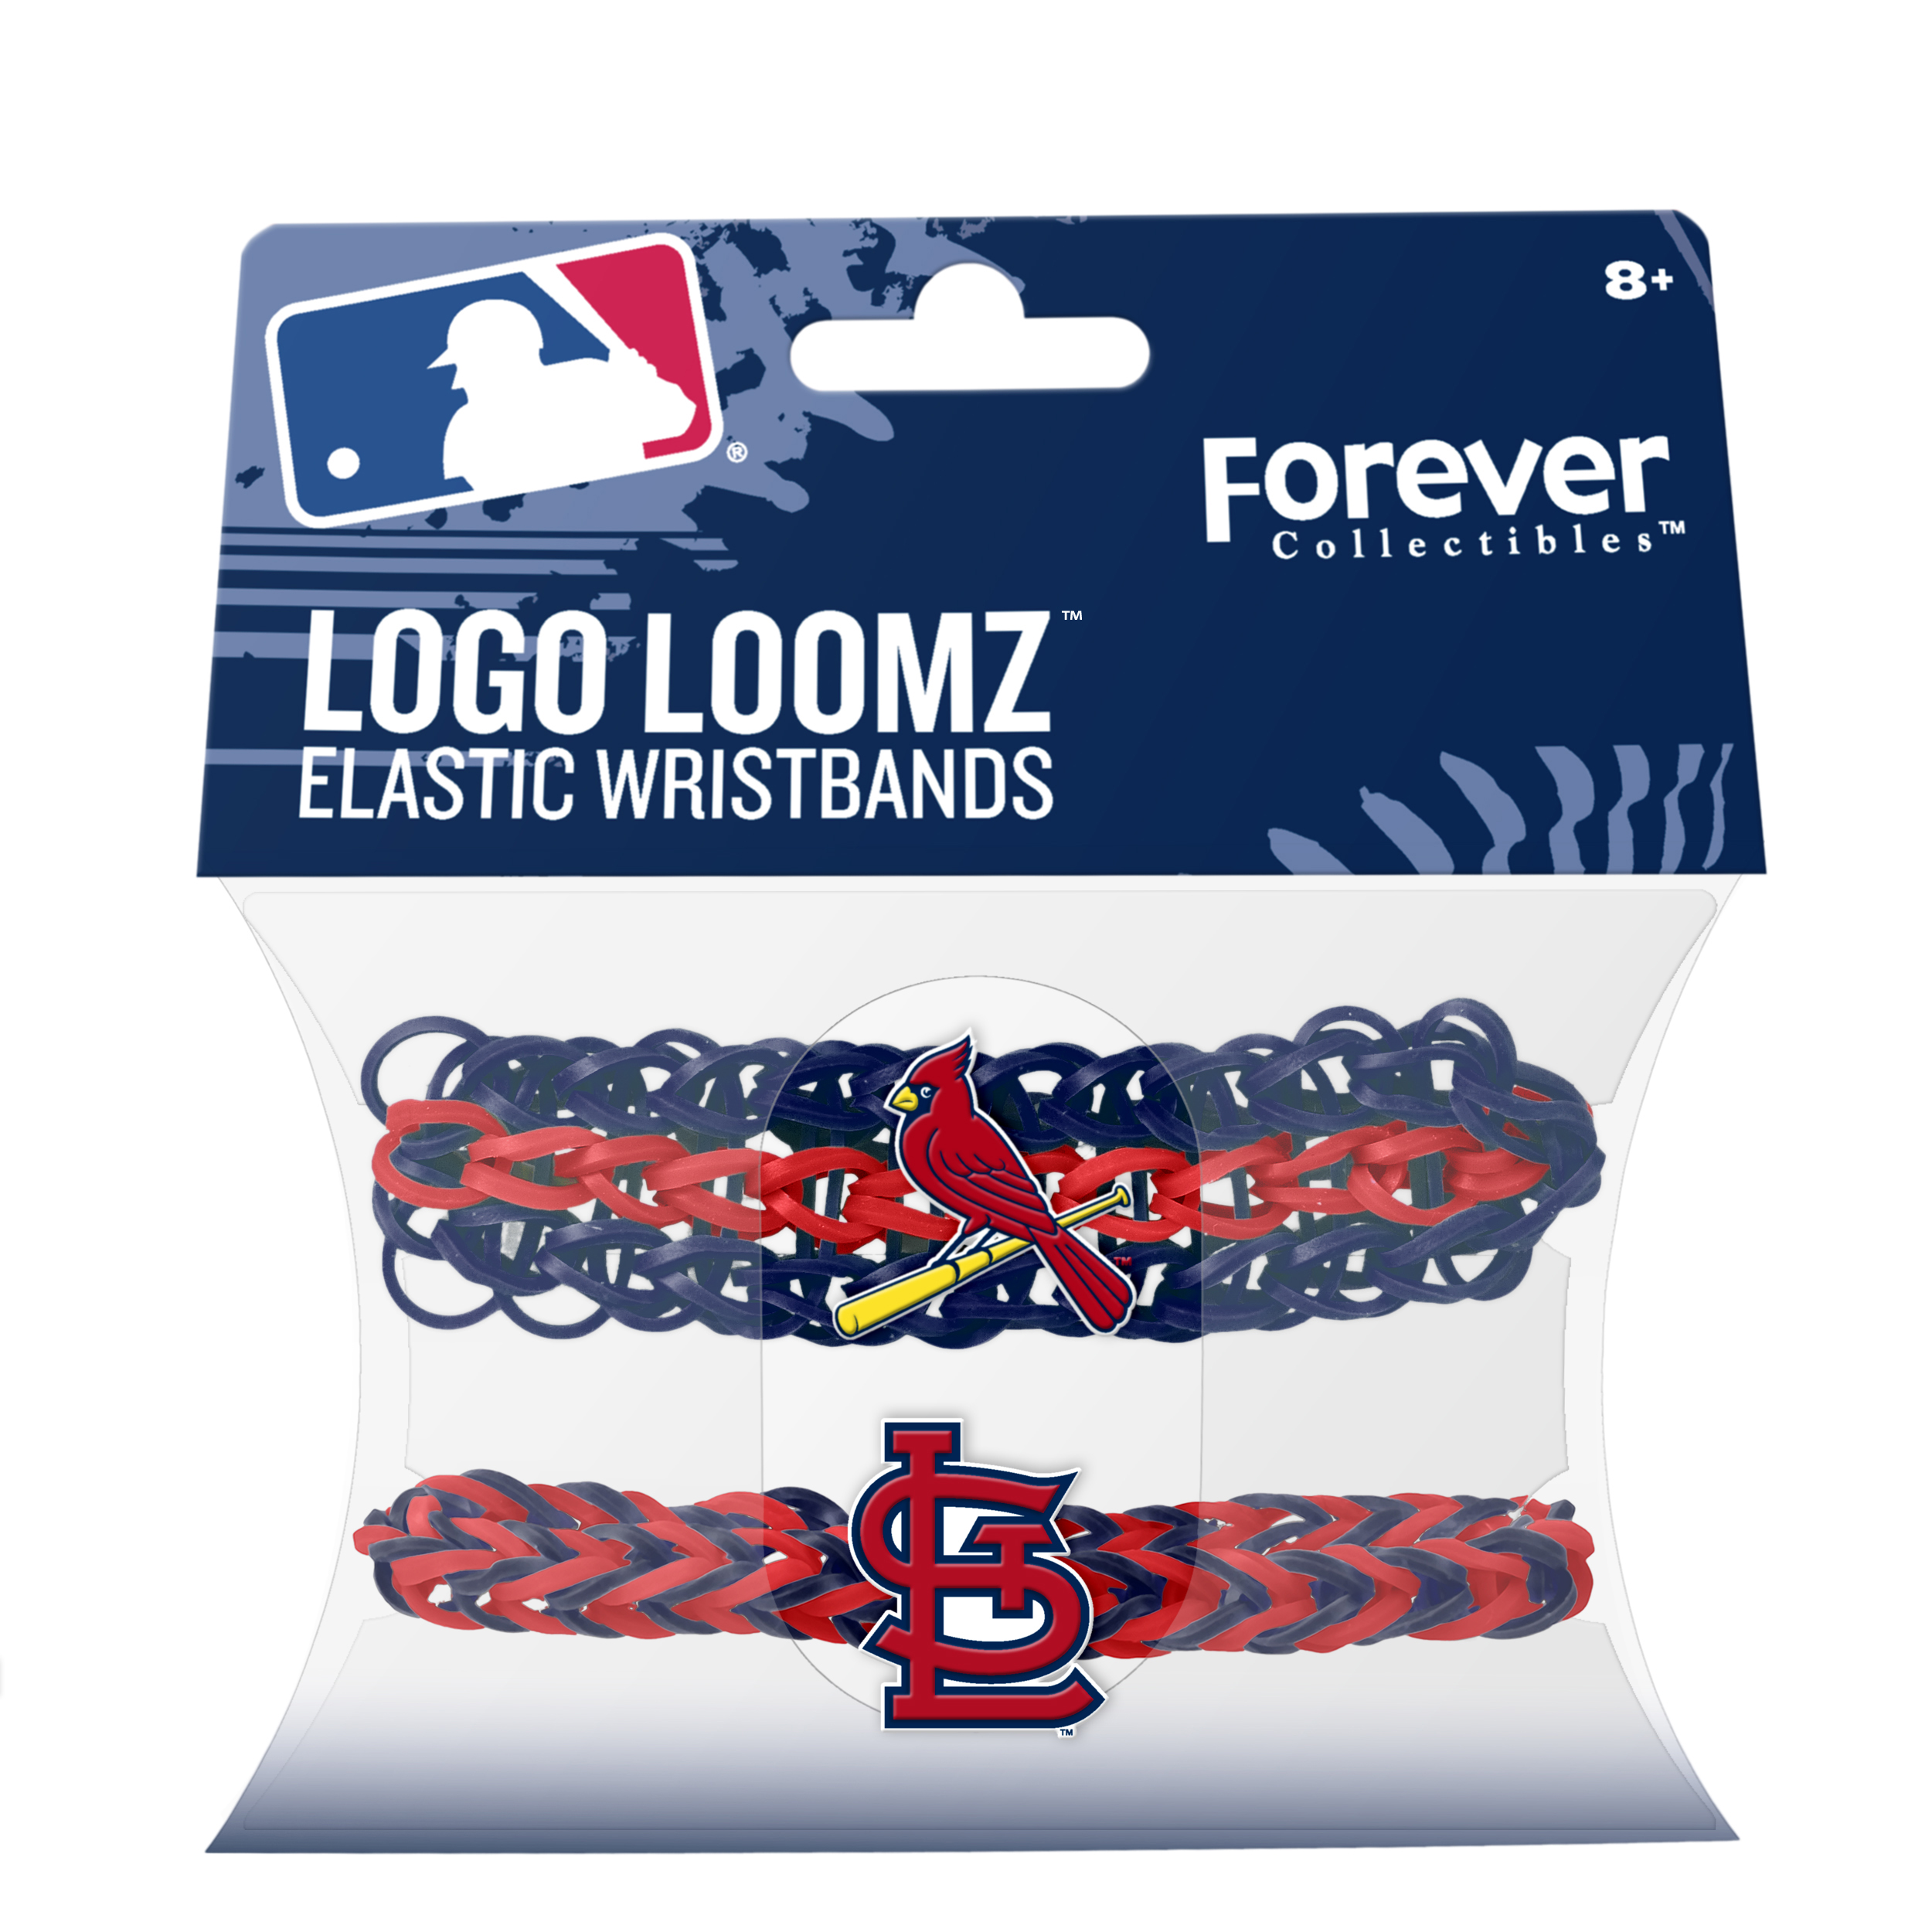 Forever Collectibles Logo Loomz Premade Wristband St. Louis Cardinals